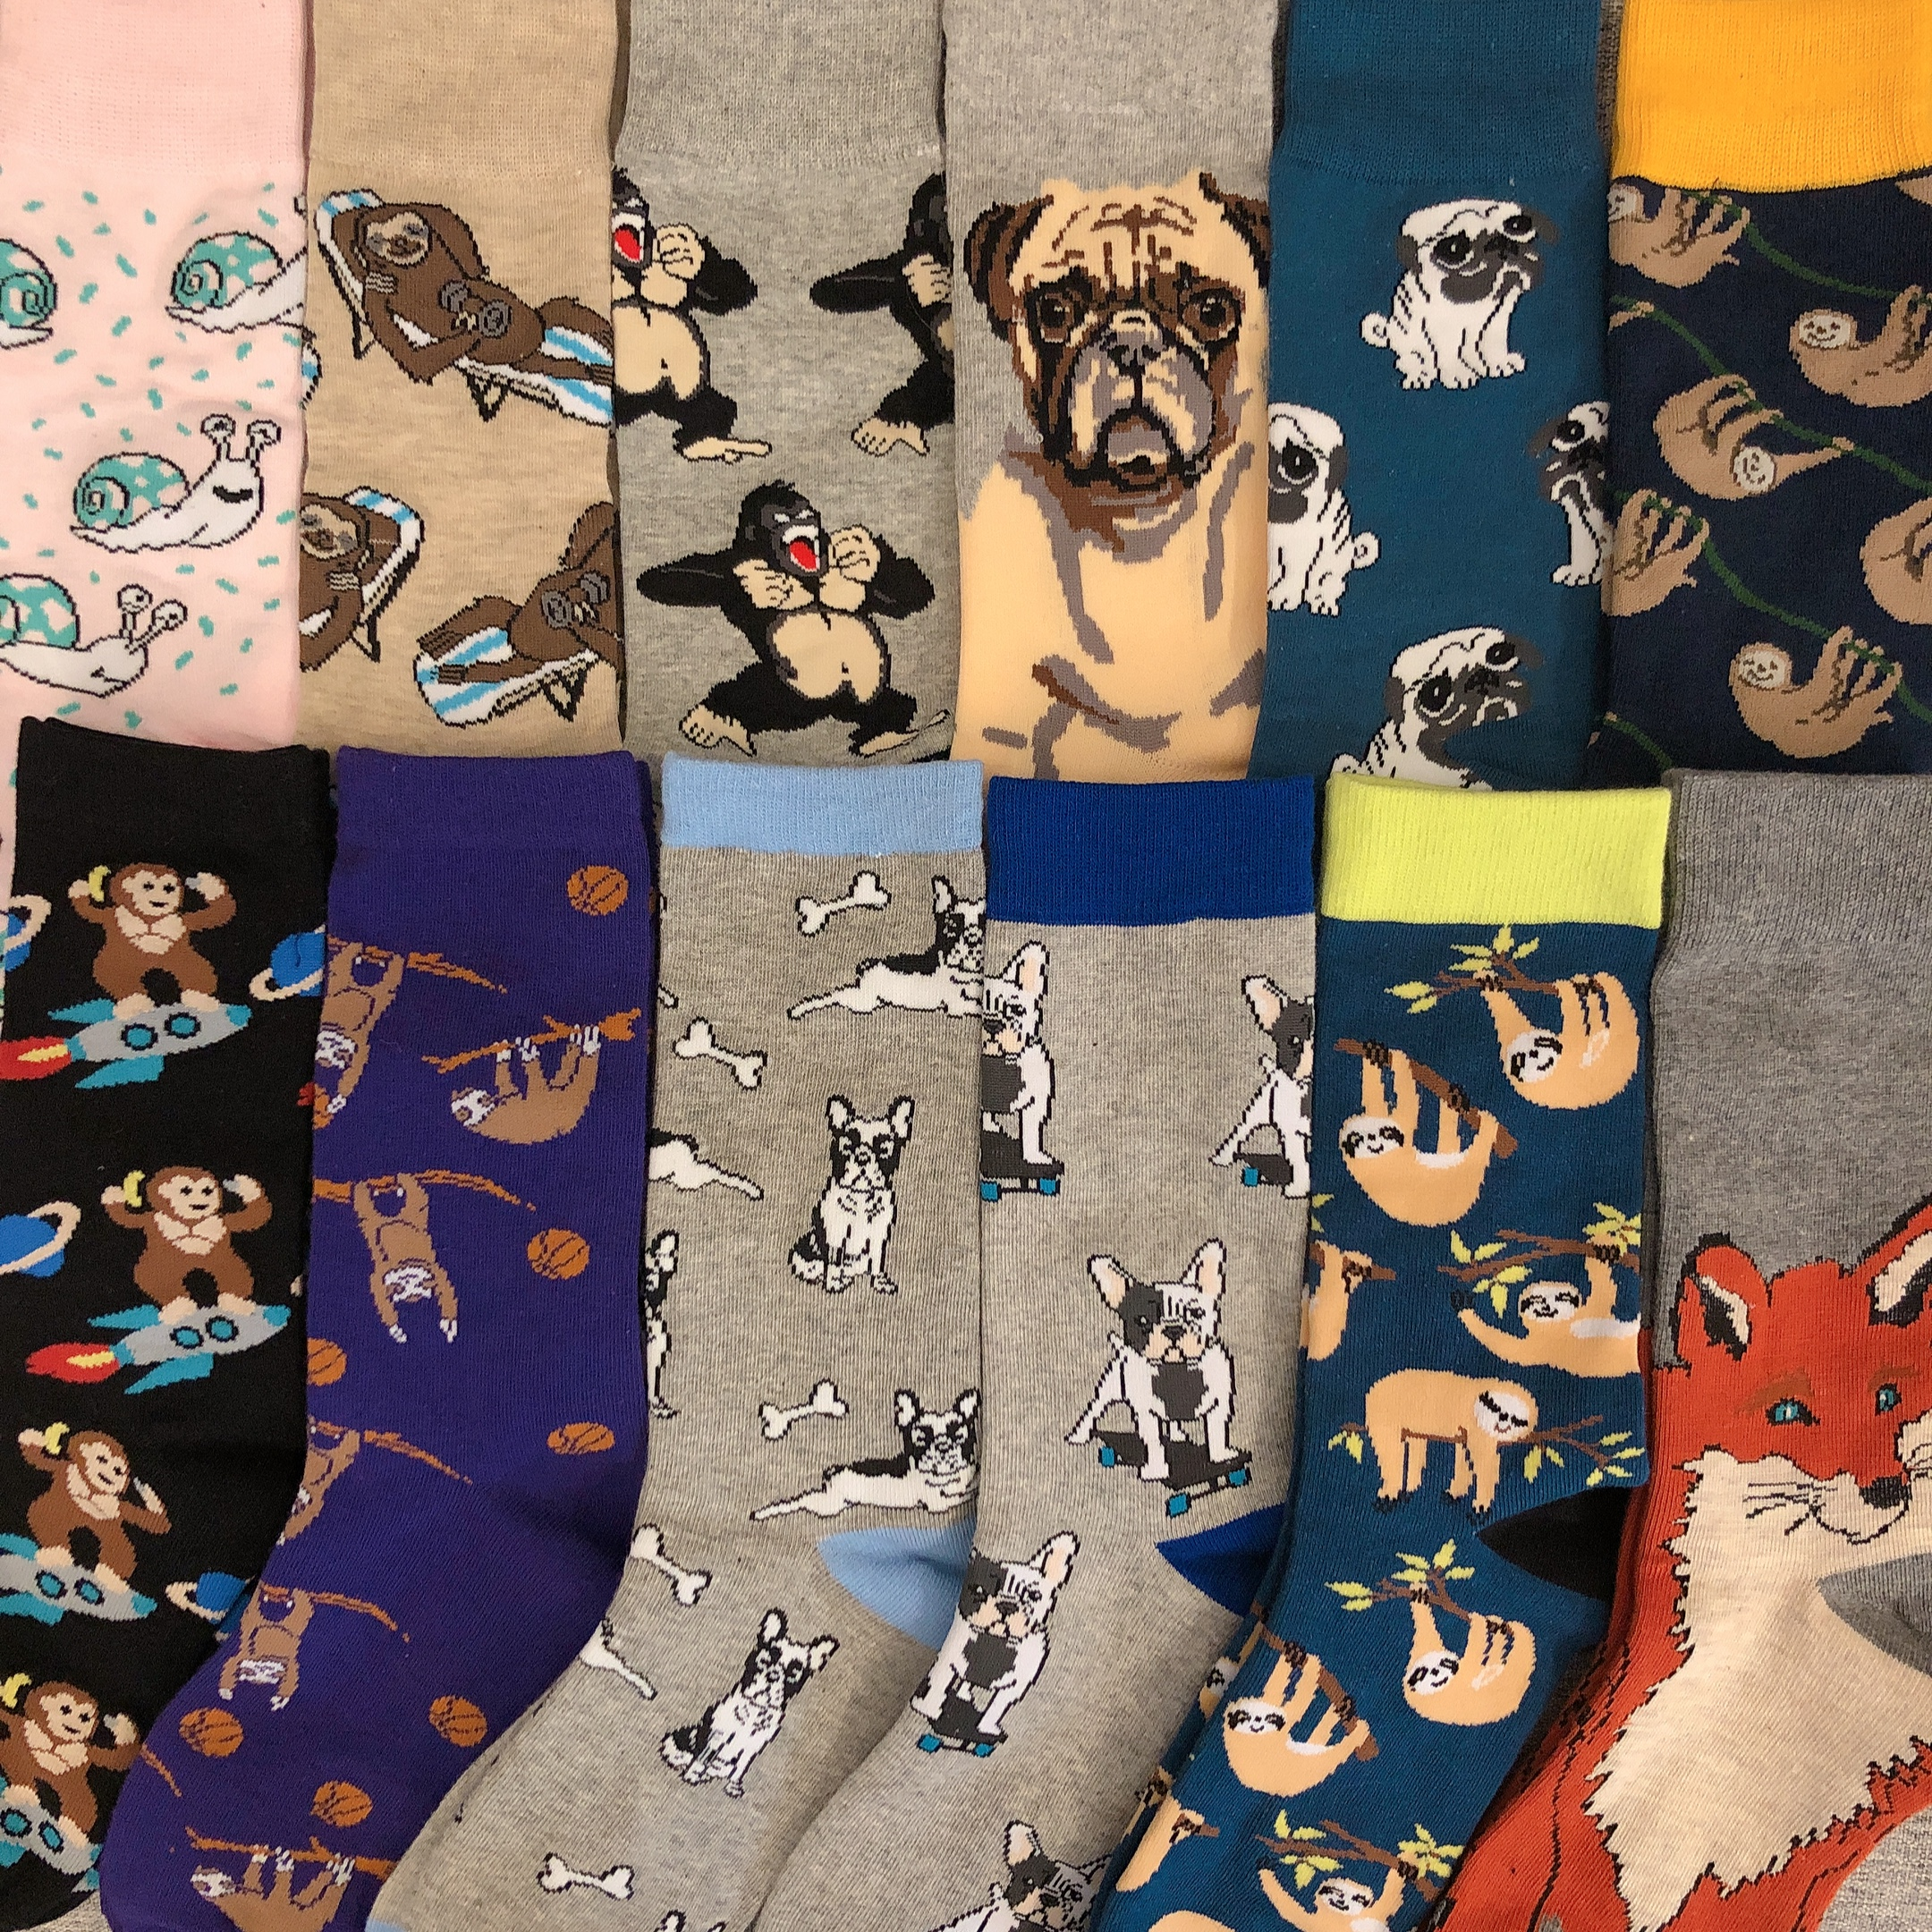 Freeshipping Crew Fashion Funny Socks Chimpanzee Pug Bull Bulldog Sloth Snail Boston Terrier Monkey Dog Puppy Animal Dropship